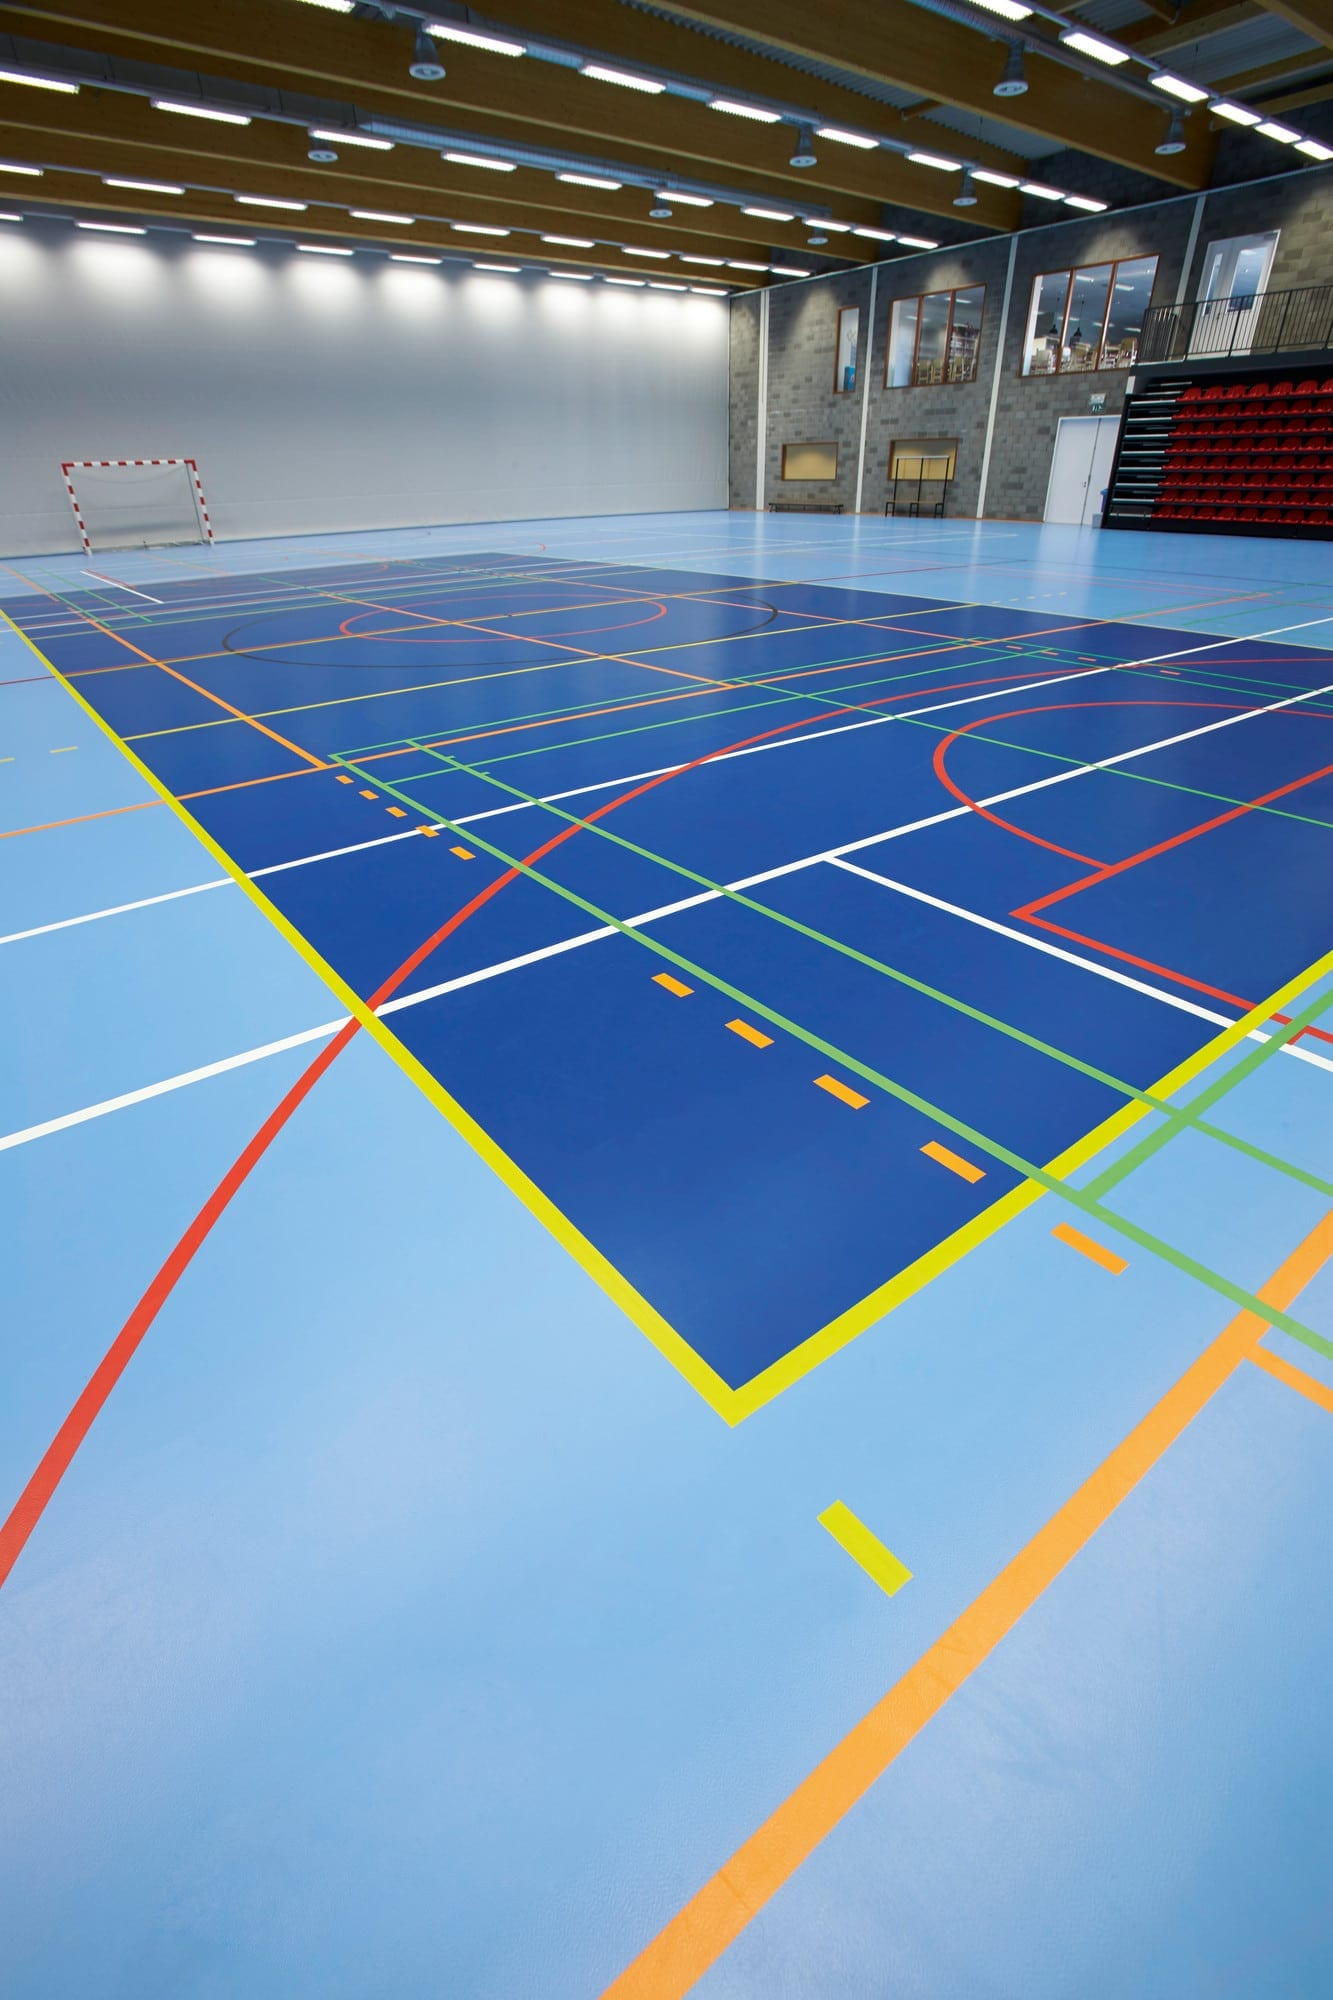 New multi-use leisure centre sports floor with line markings